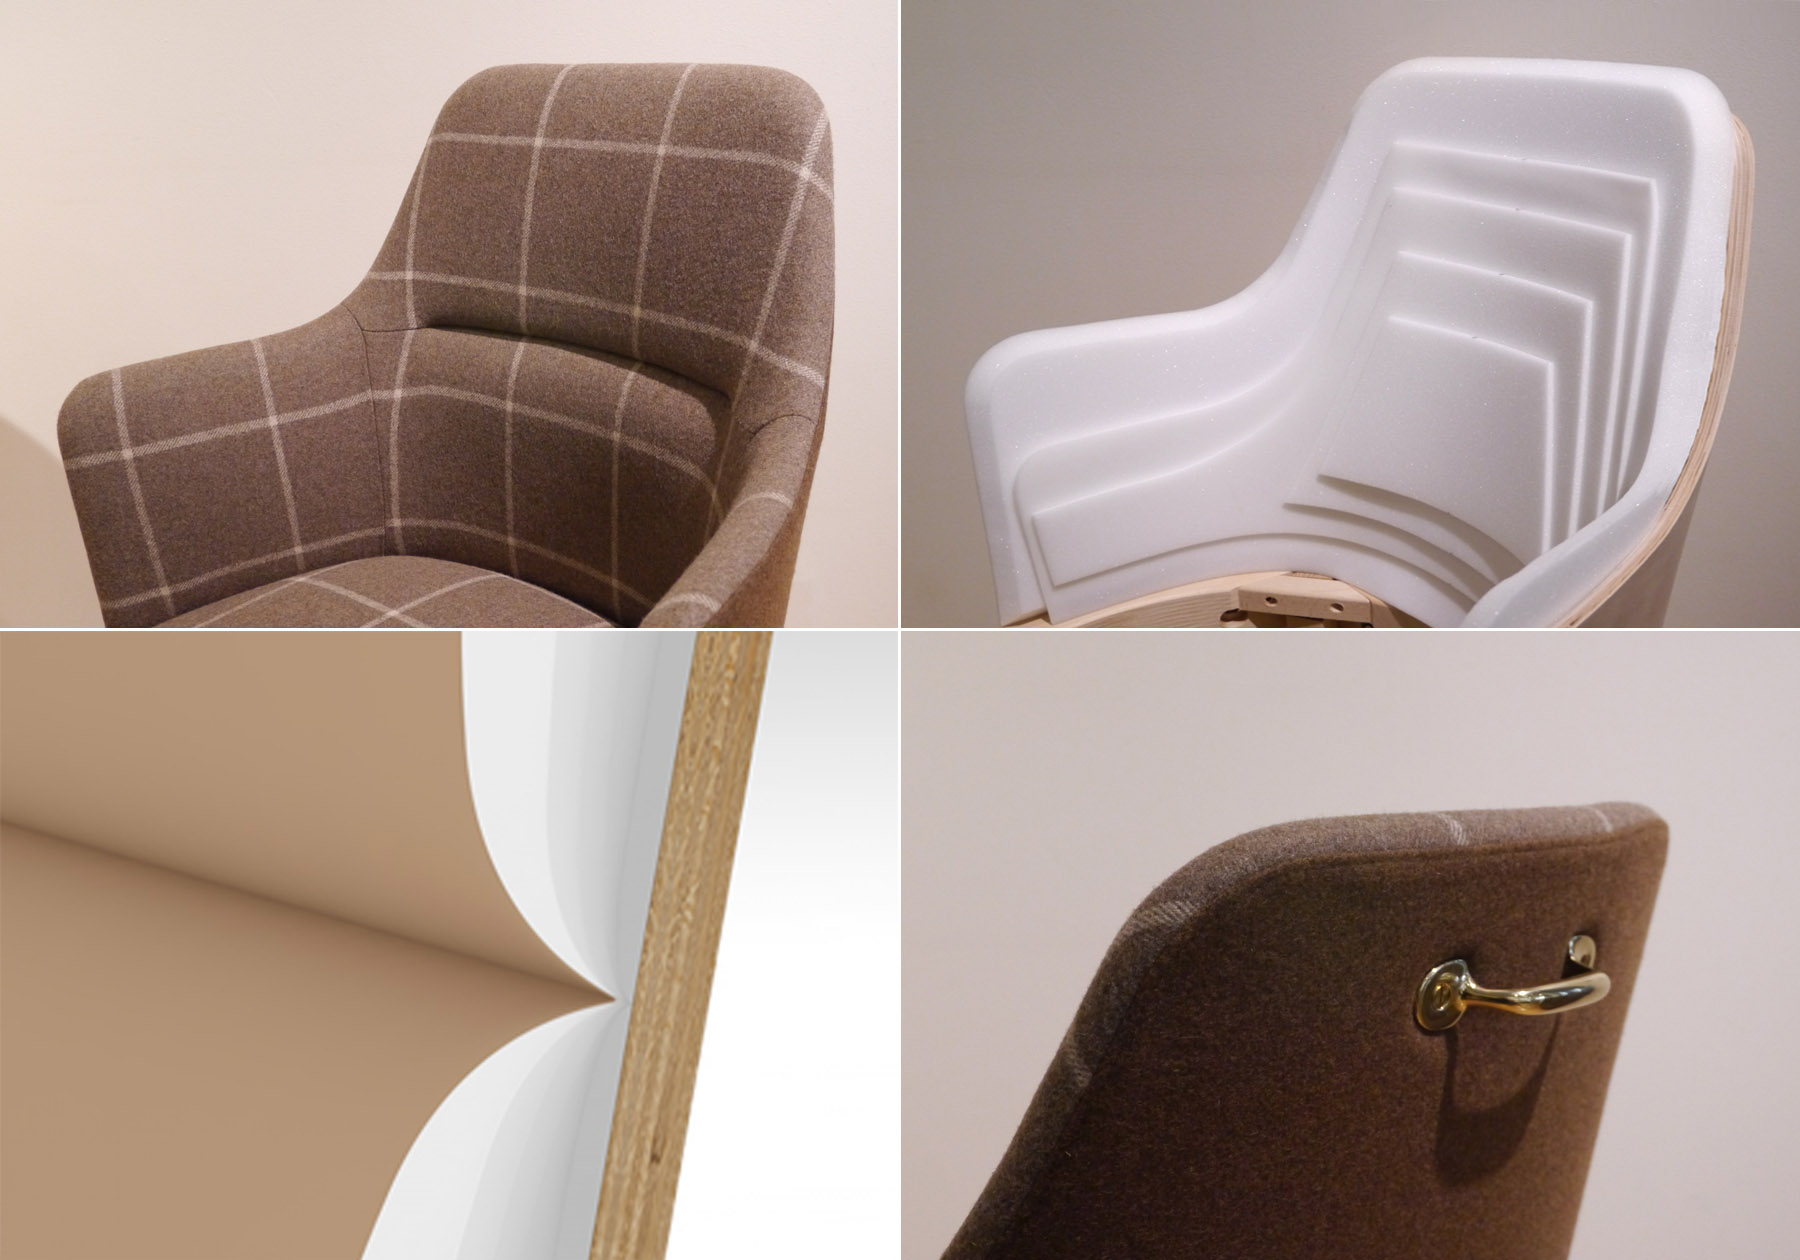 PRODUCT : MD-901 Chair